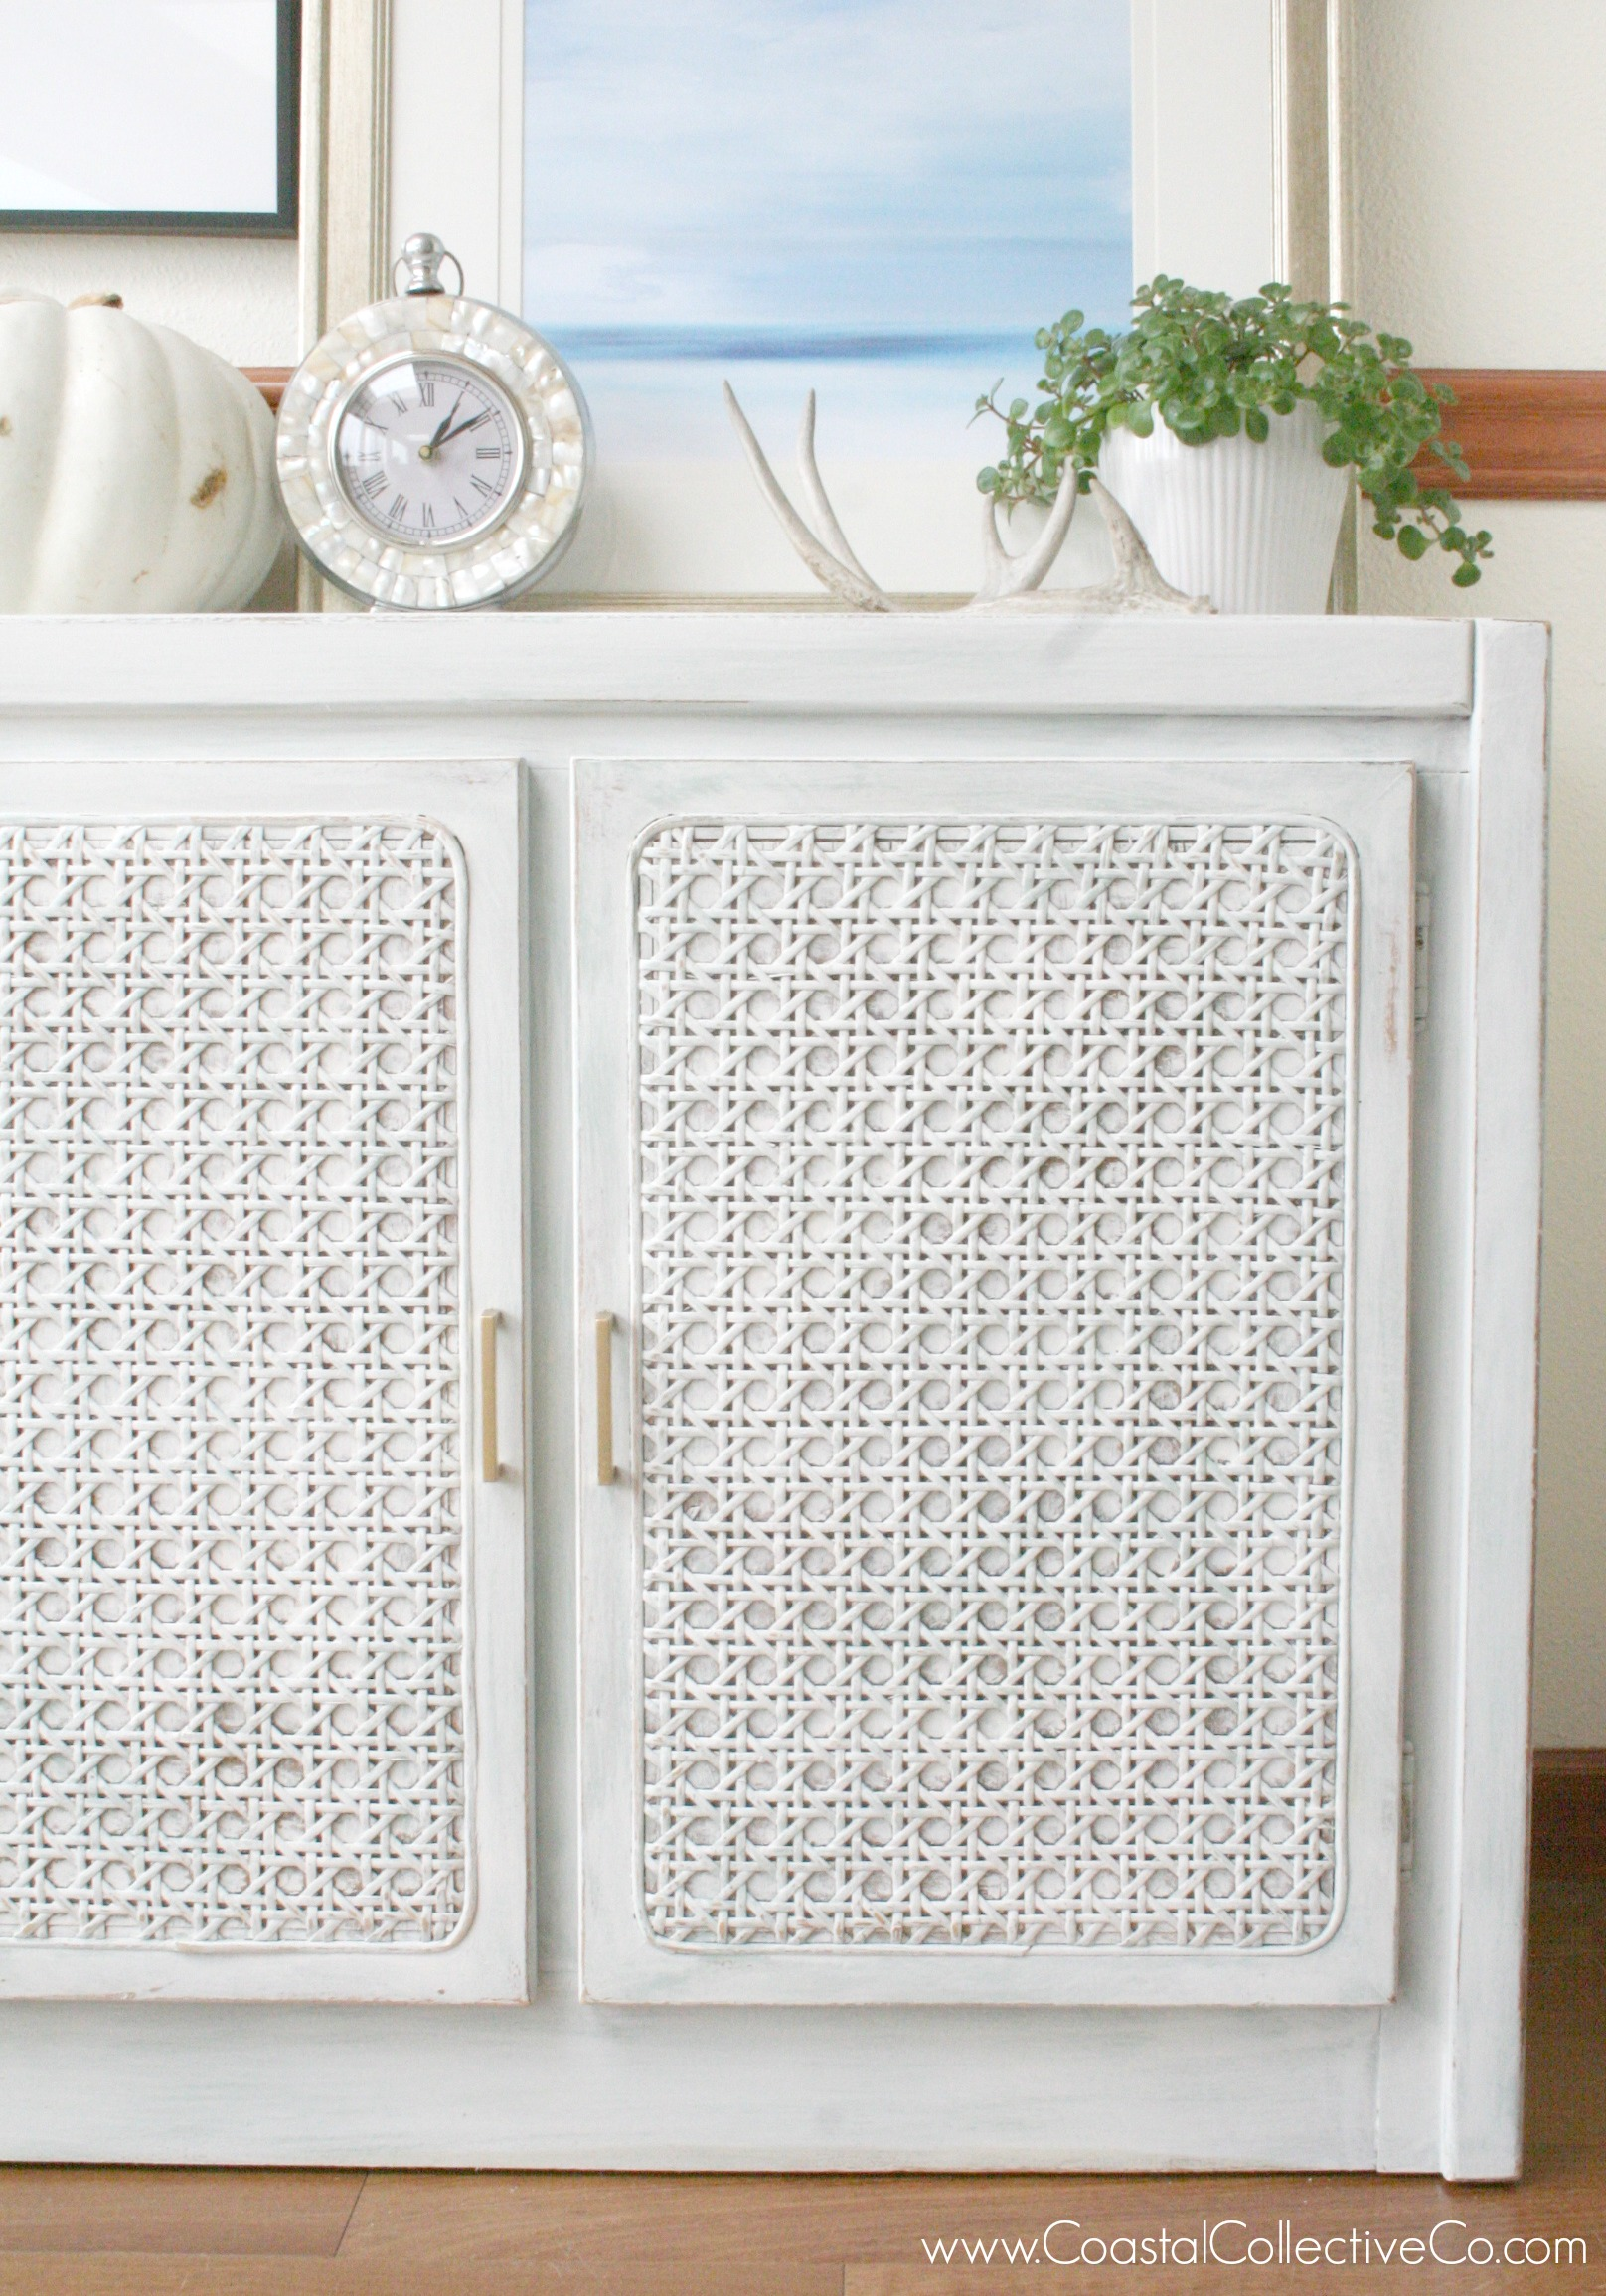 Goodwill Cabinet Makeover with Chalk Paint.jpg